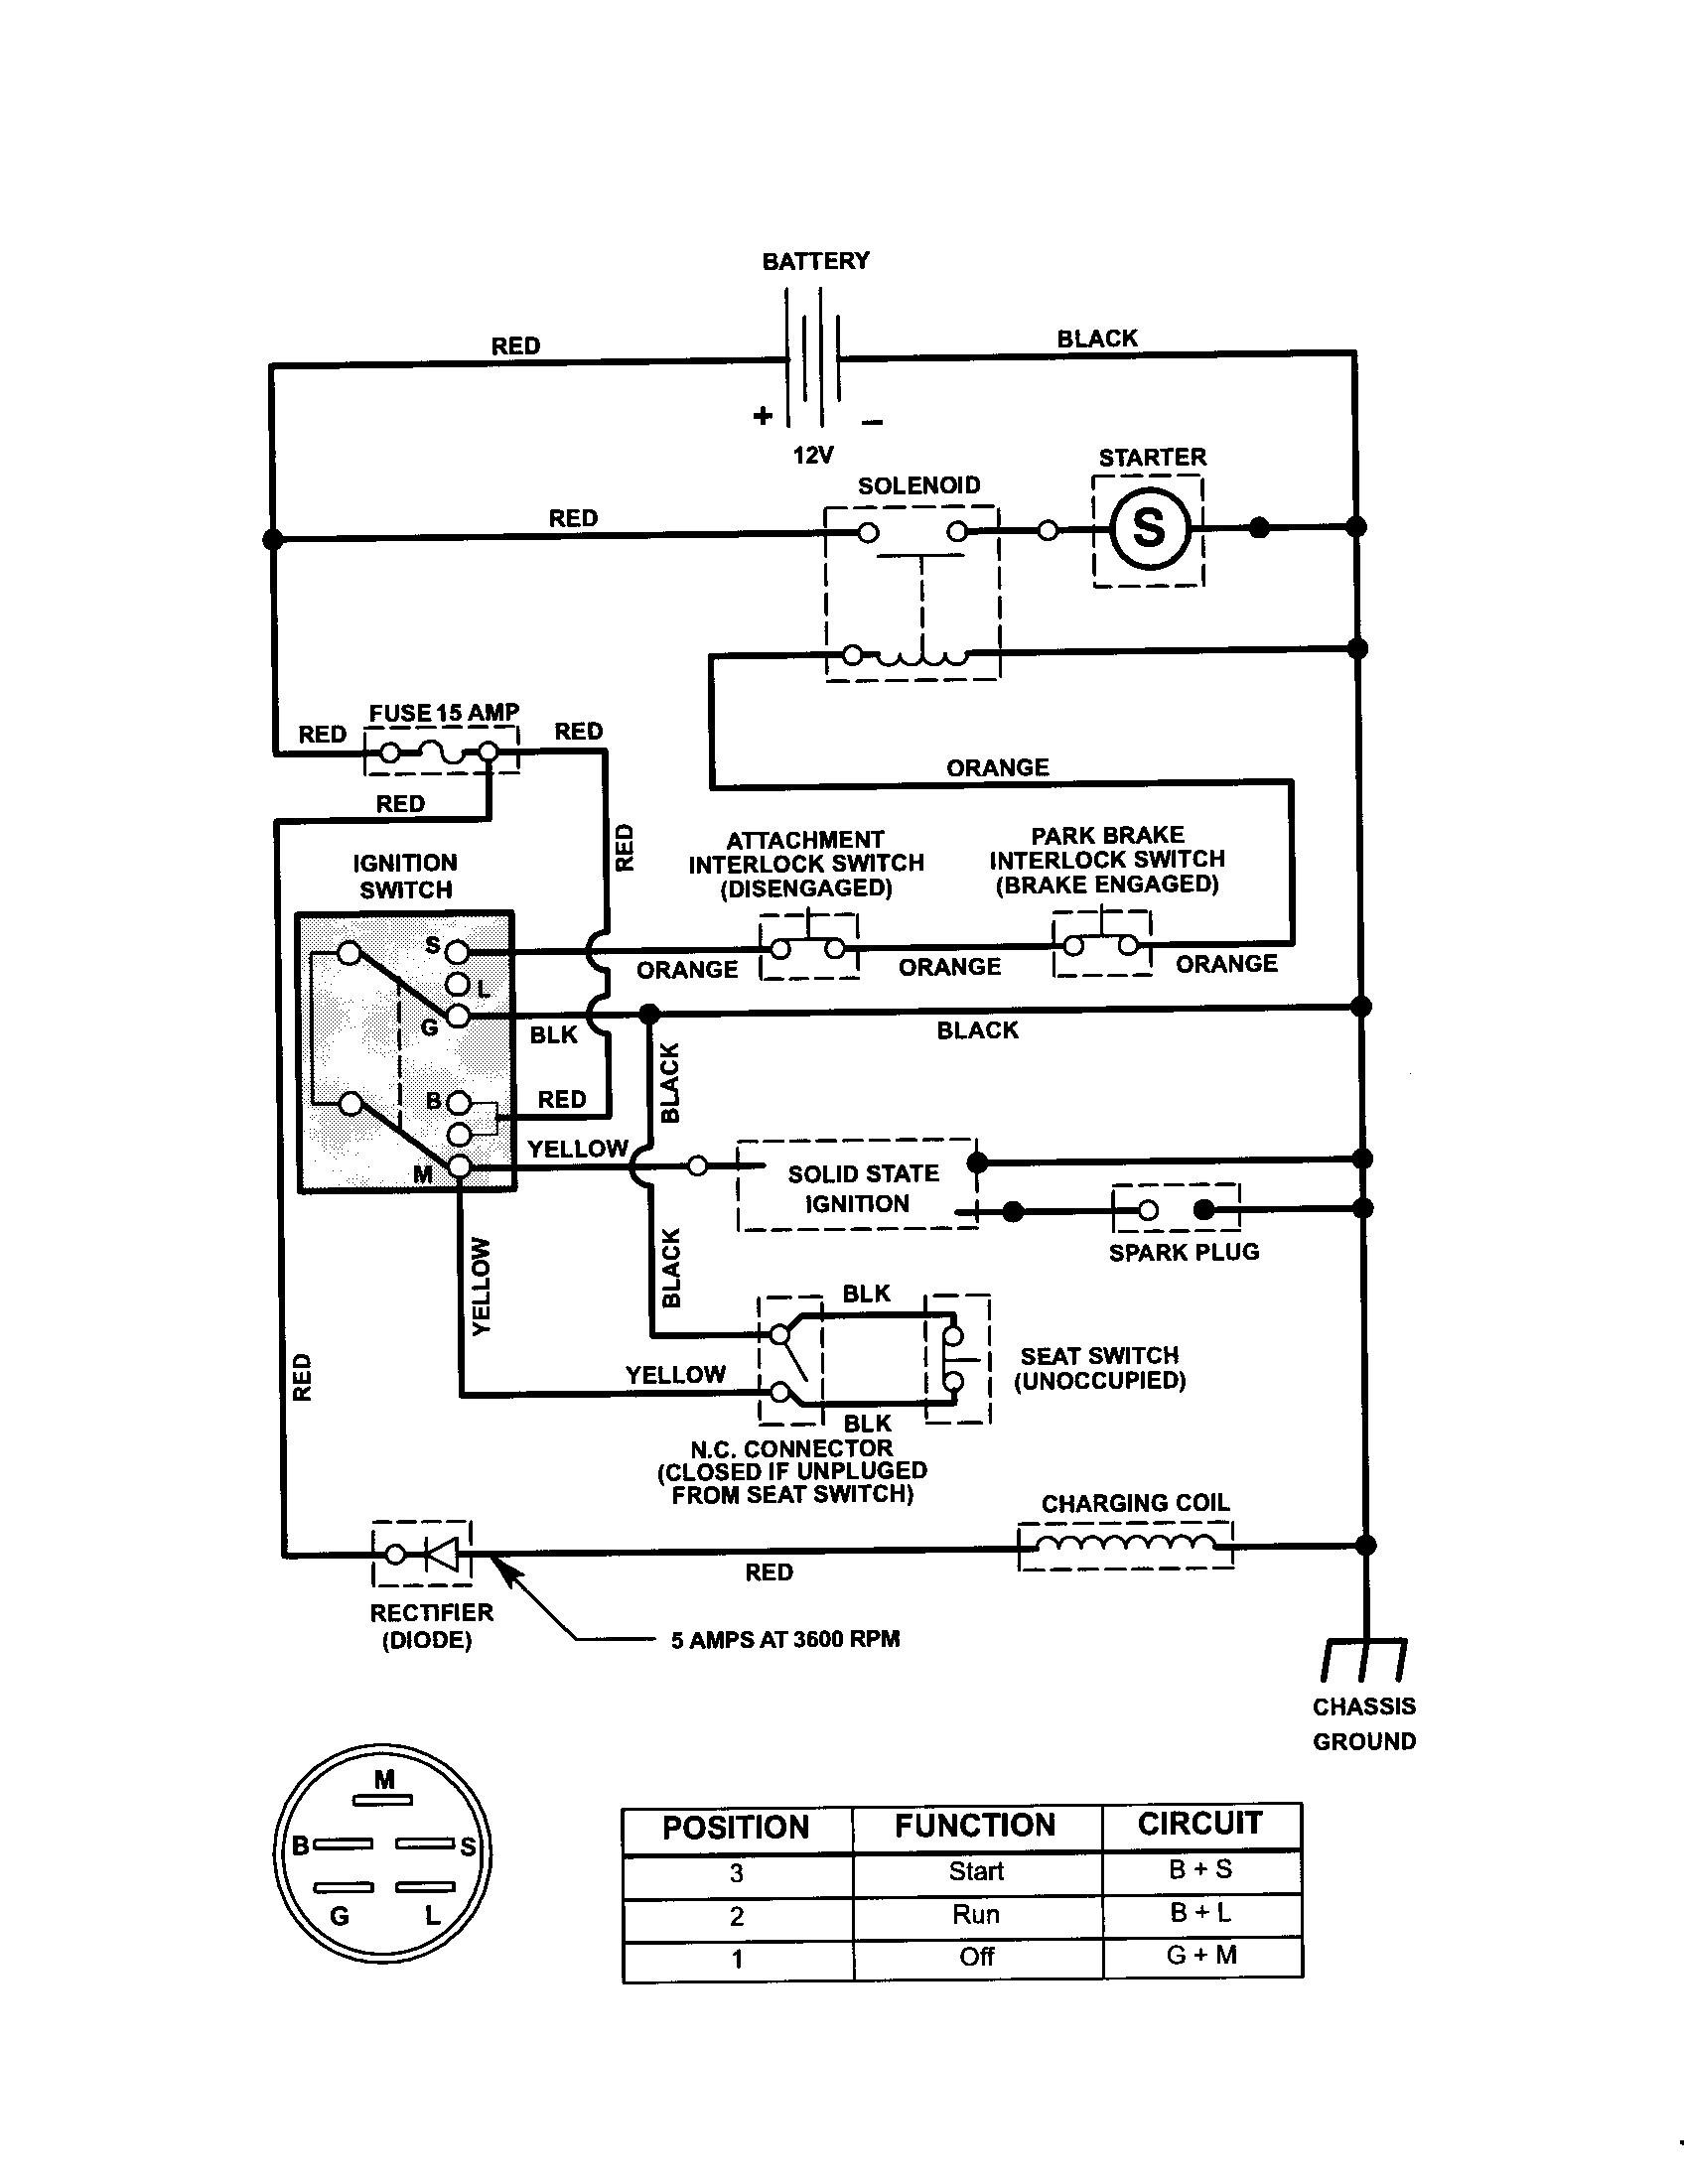 Wiring Diagram for A Craftsman Riding Mower Wiring Diagram for Craftsman Riding Lawn Mower Lovely Craftsman Of Wiring Diagram for A Craftsman Riding Mower